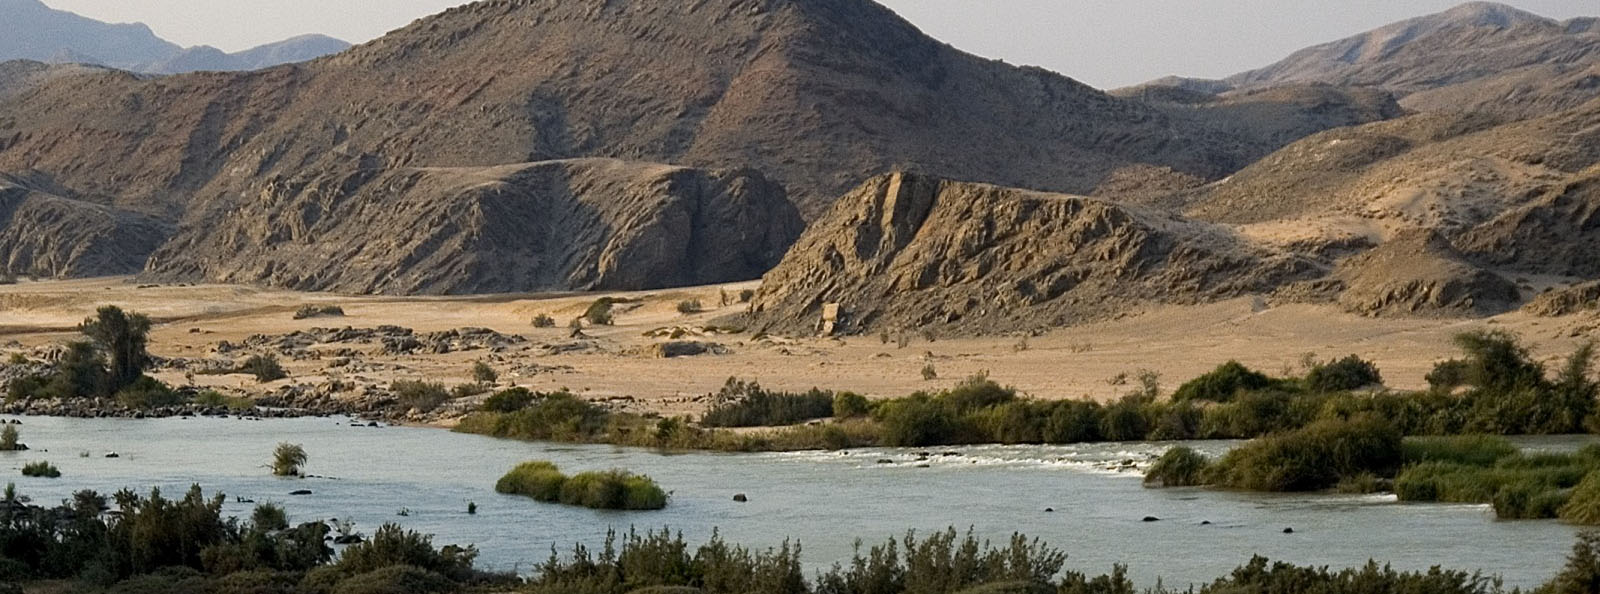 Namibia's Southern Kaokoland is remote and vast